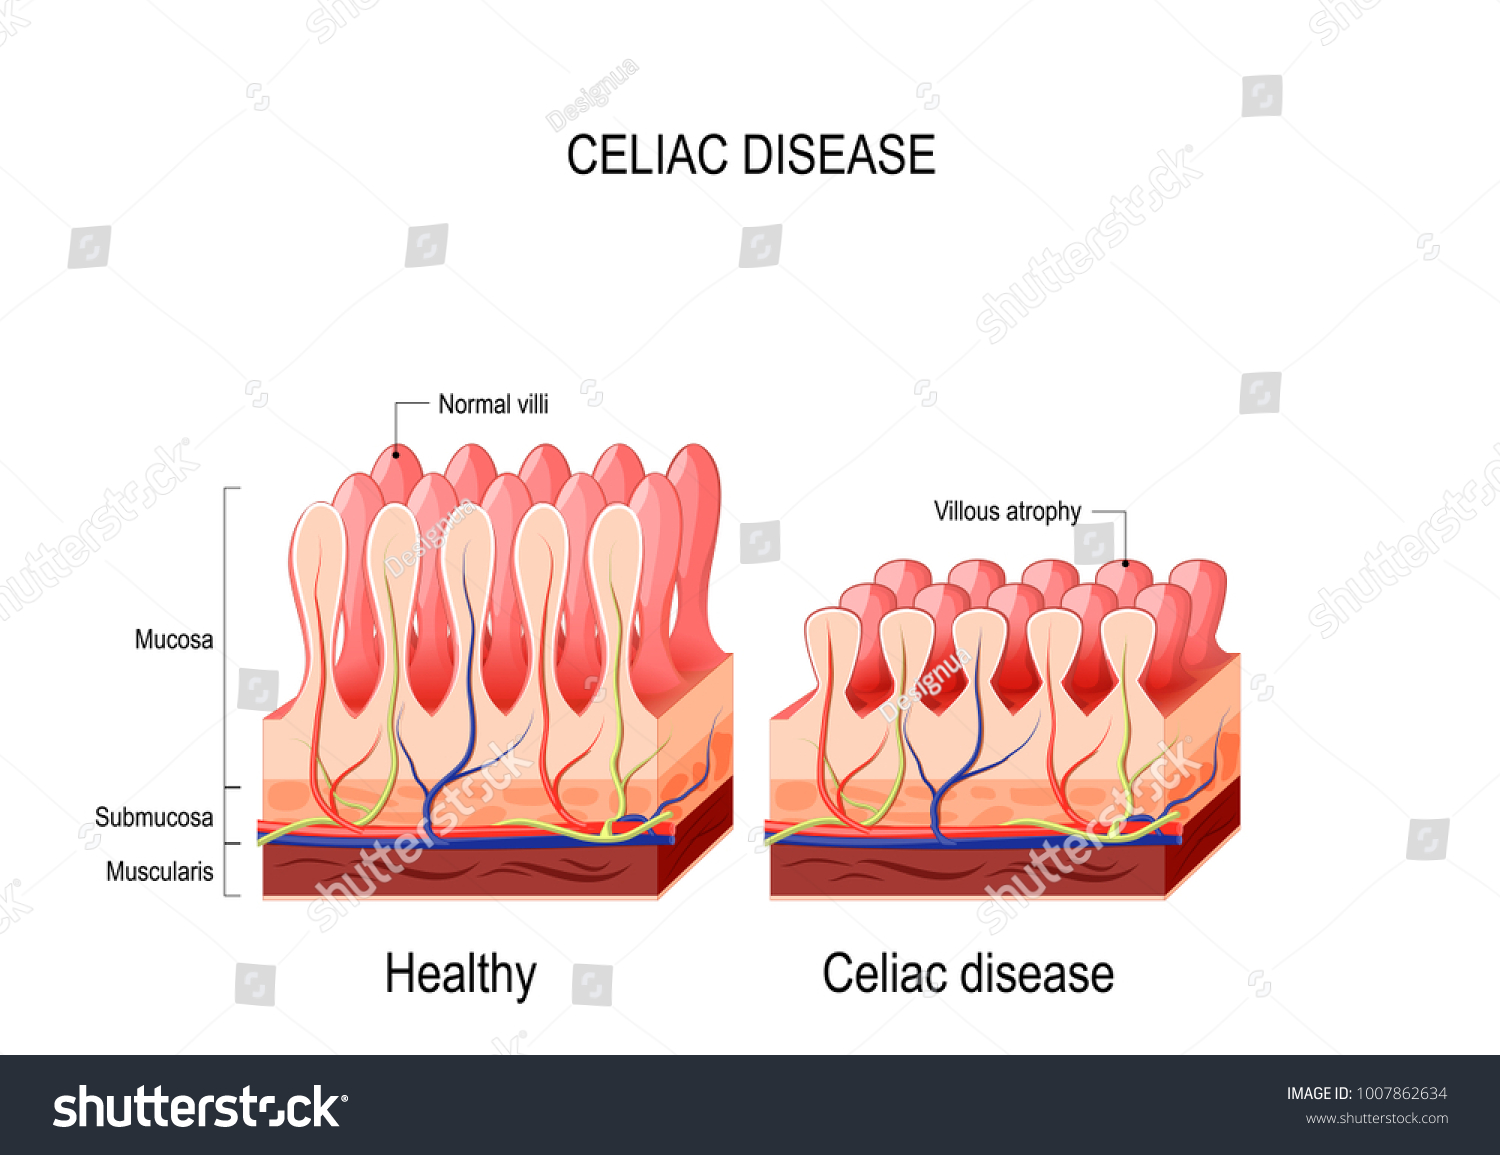 Coeliac Disease Celiac Disease Normal Villi Stockillustration